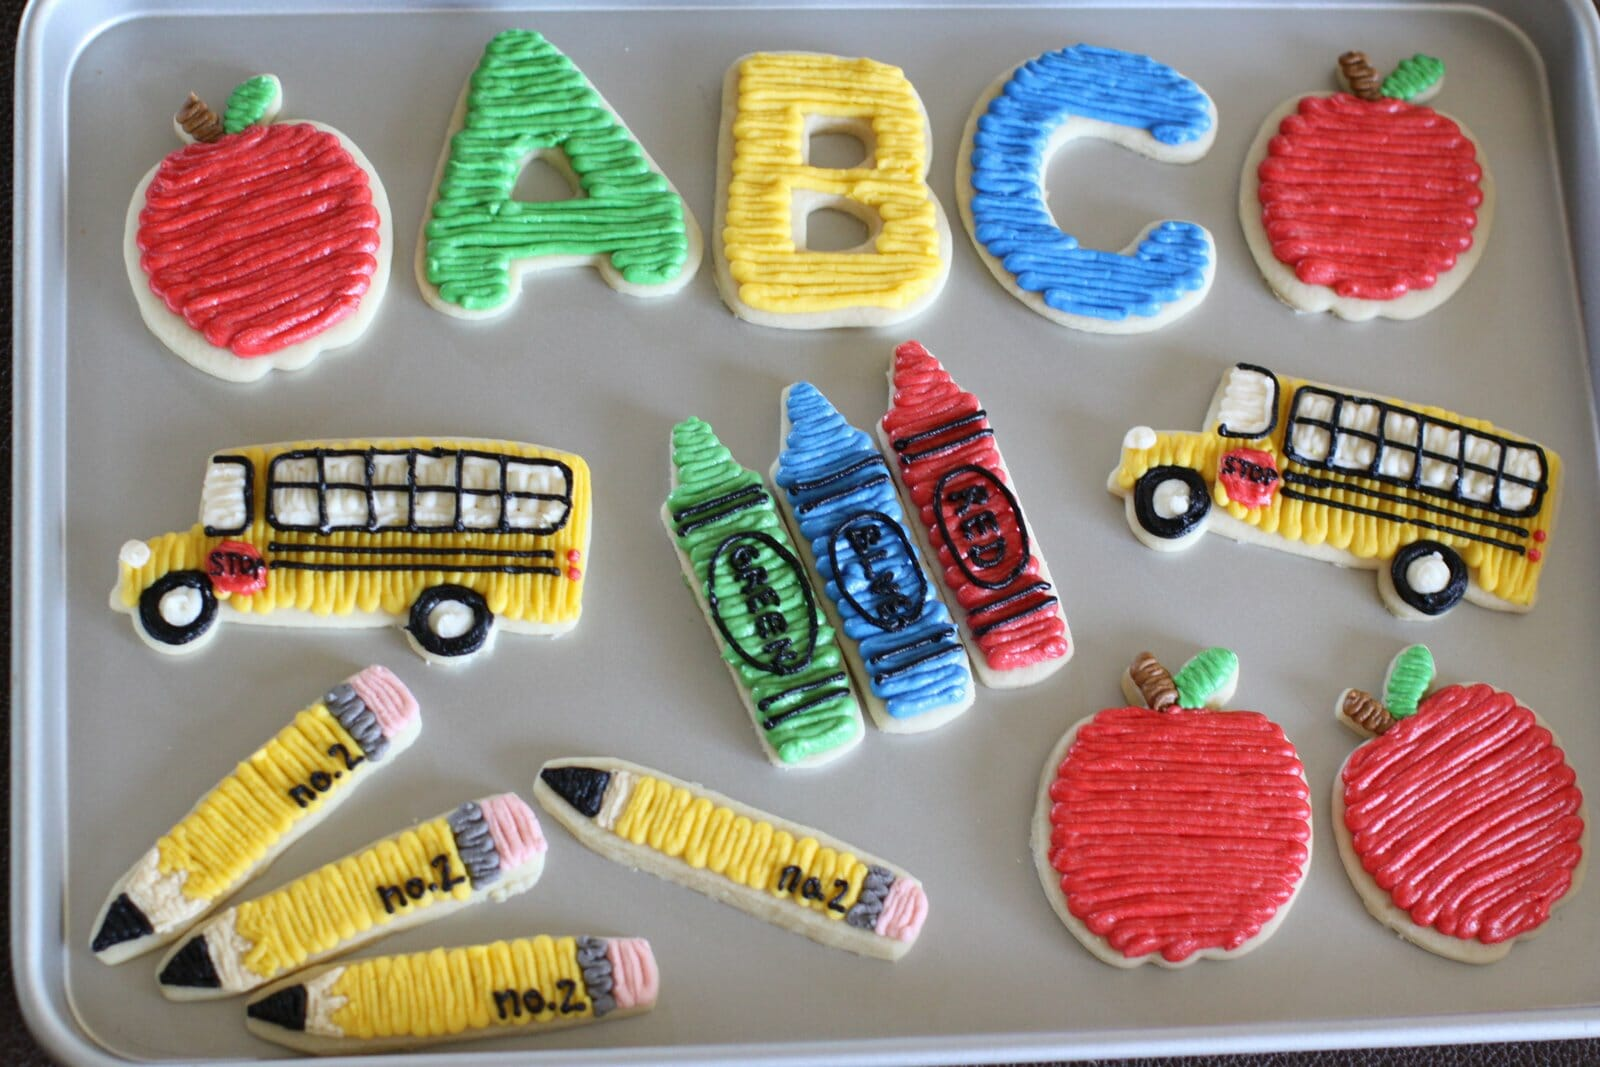 ABC Crayola Cookies